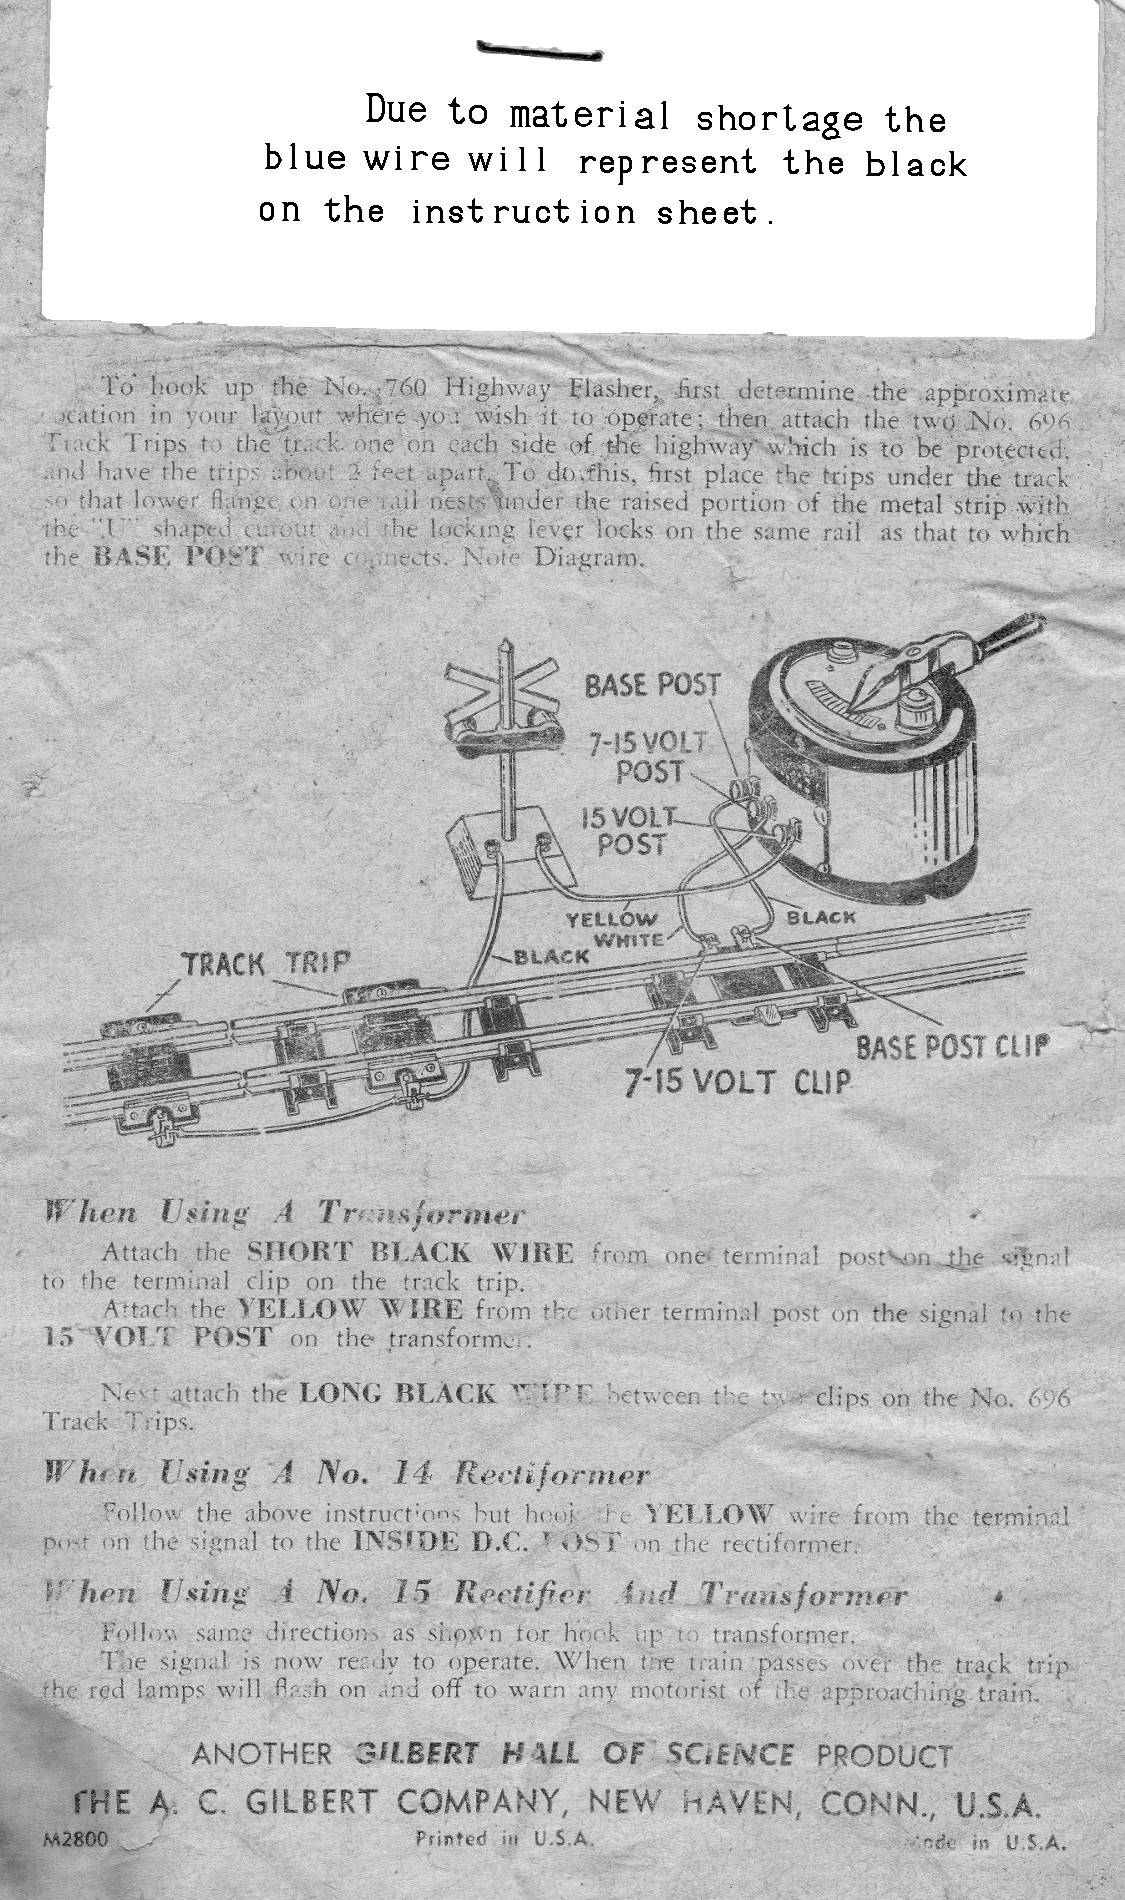 Instructions for Setting Up and Operating No. 760 Highway Flasher - Page 2